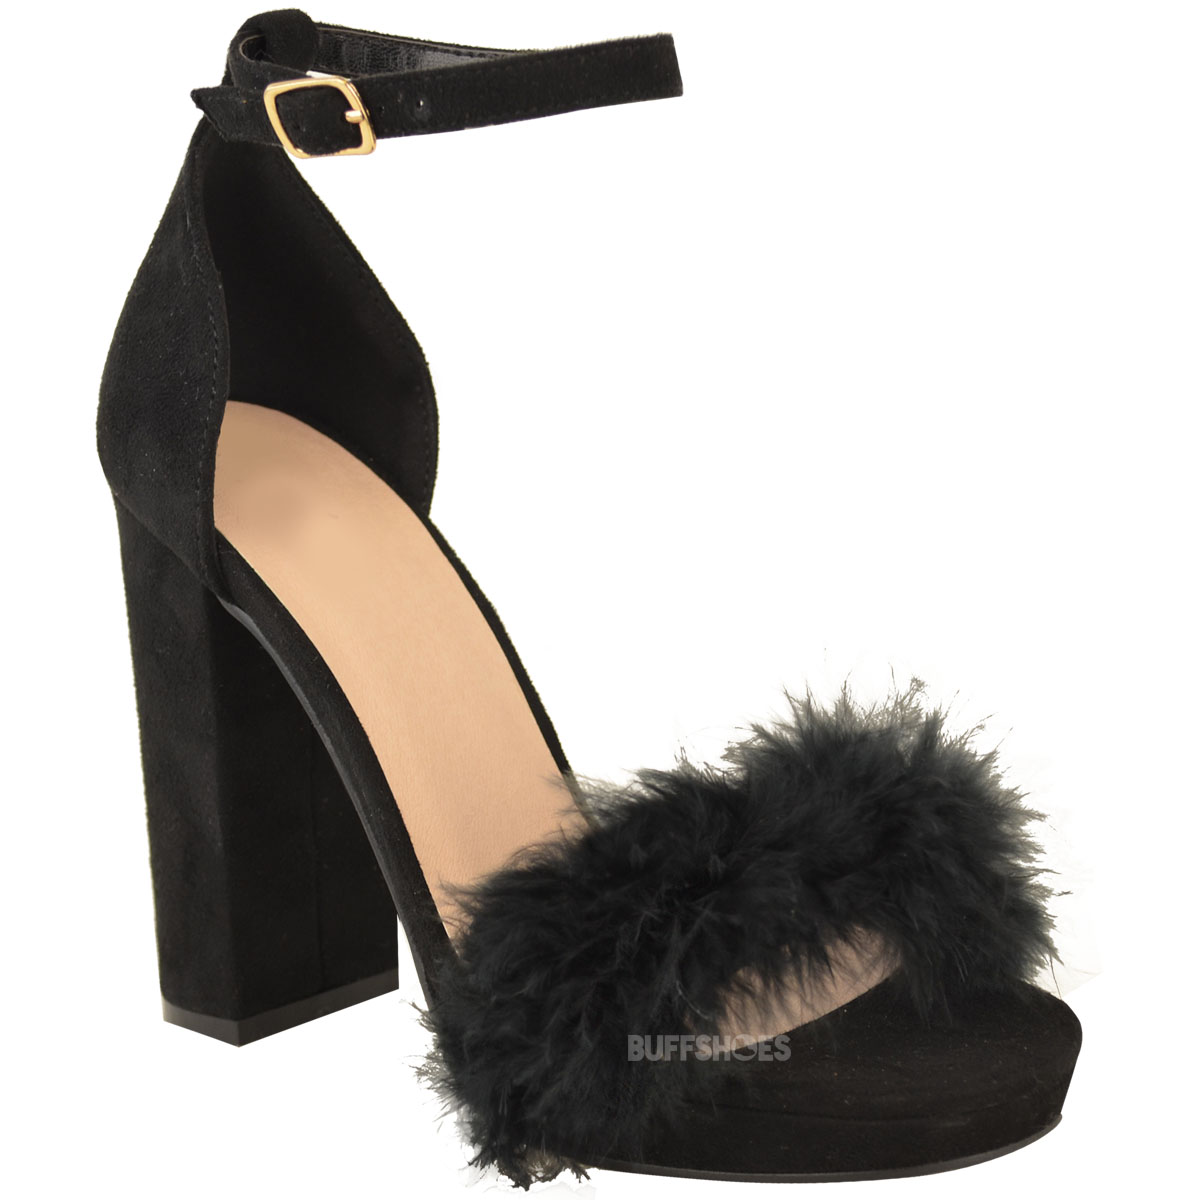 80a3e4d1a8 Womens Ladies Faux Fur Fluffy Marabou Sandals High Block Heel ...